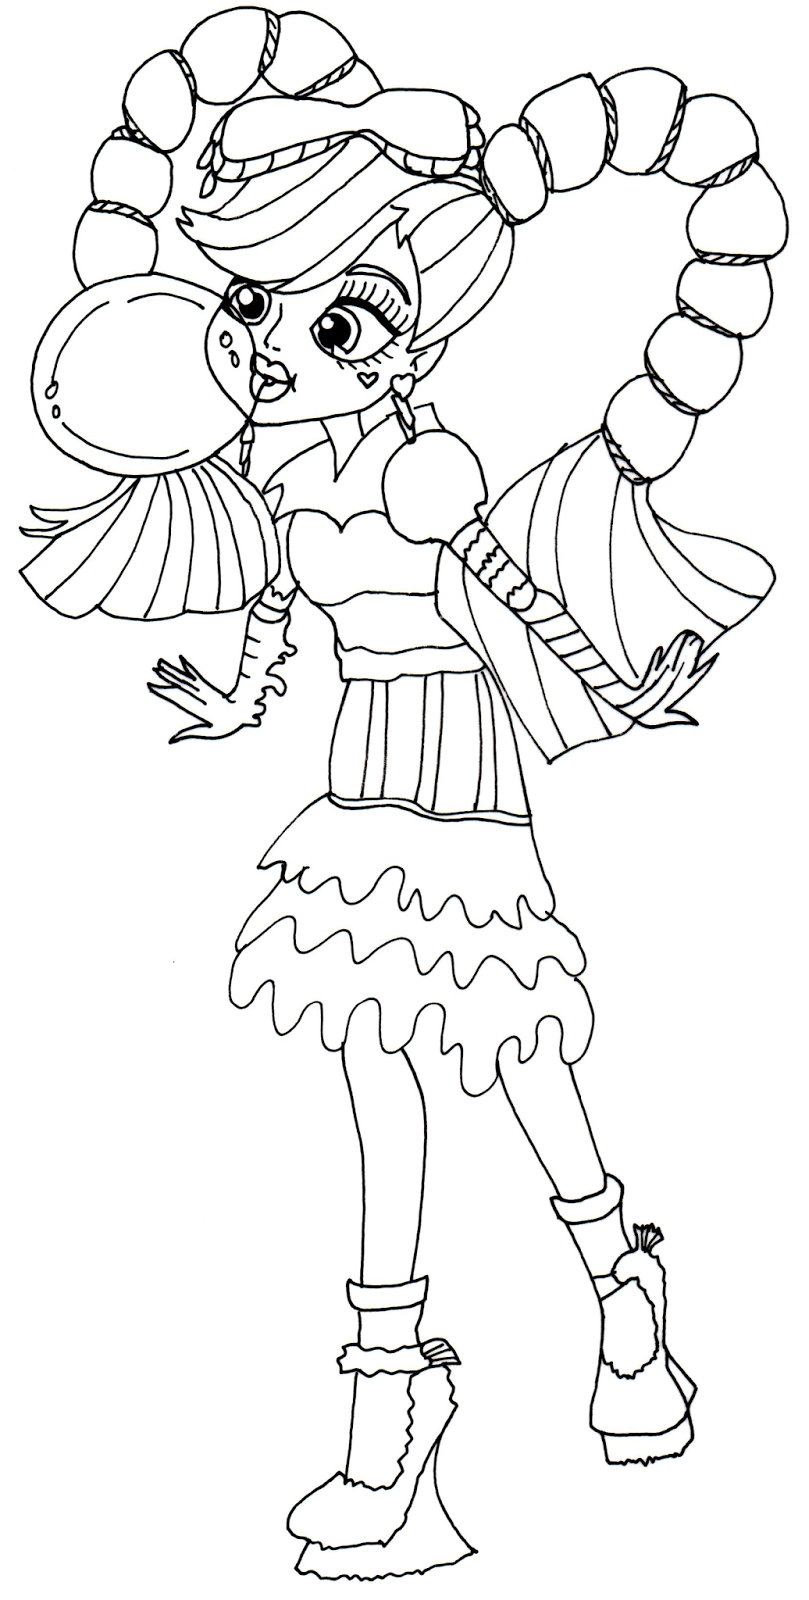 Monster high for coloring part 3 for Monster coloring pages